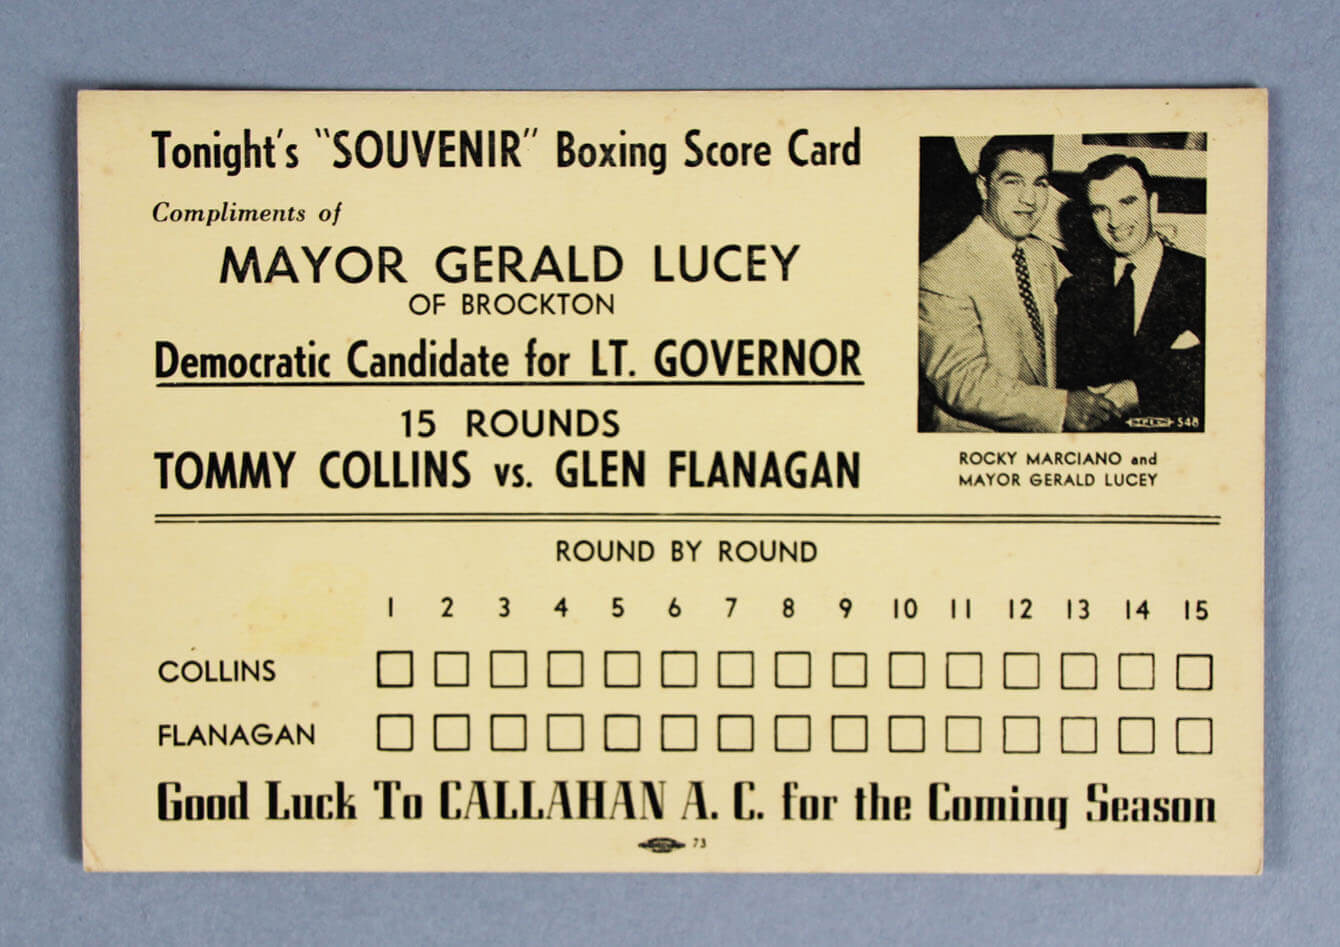 Aug. 25, 1952 Tommy Collins vs. Glen Flanagan Boxing Score Card